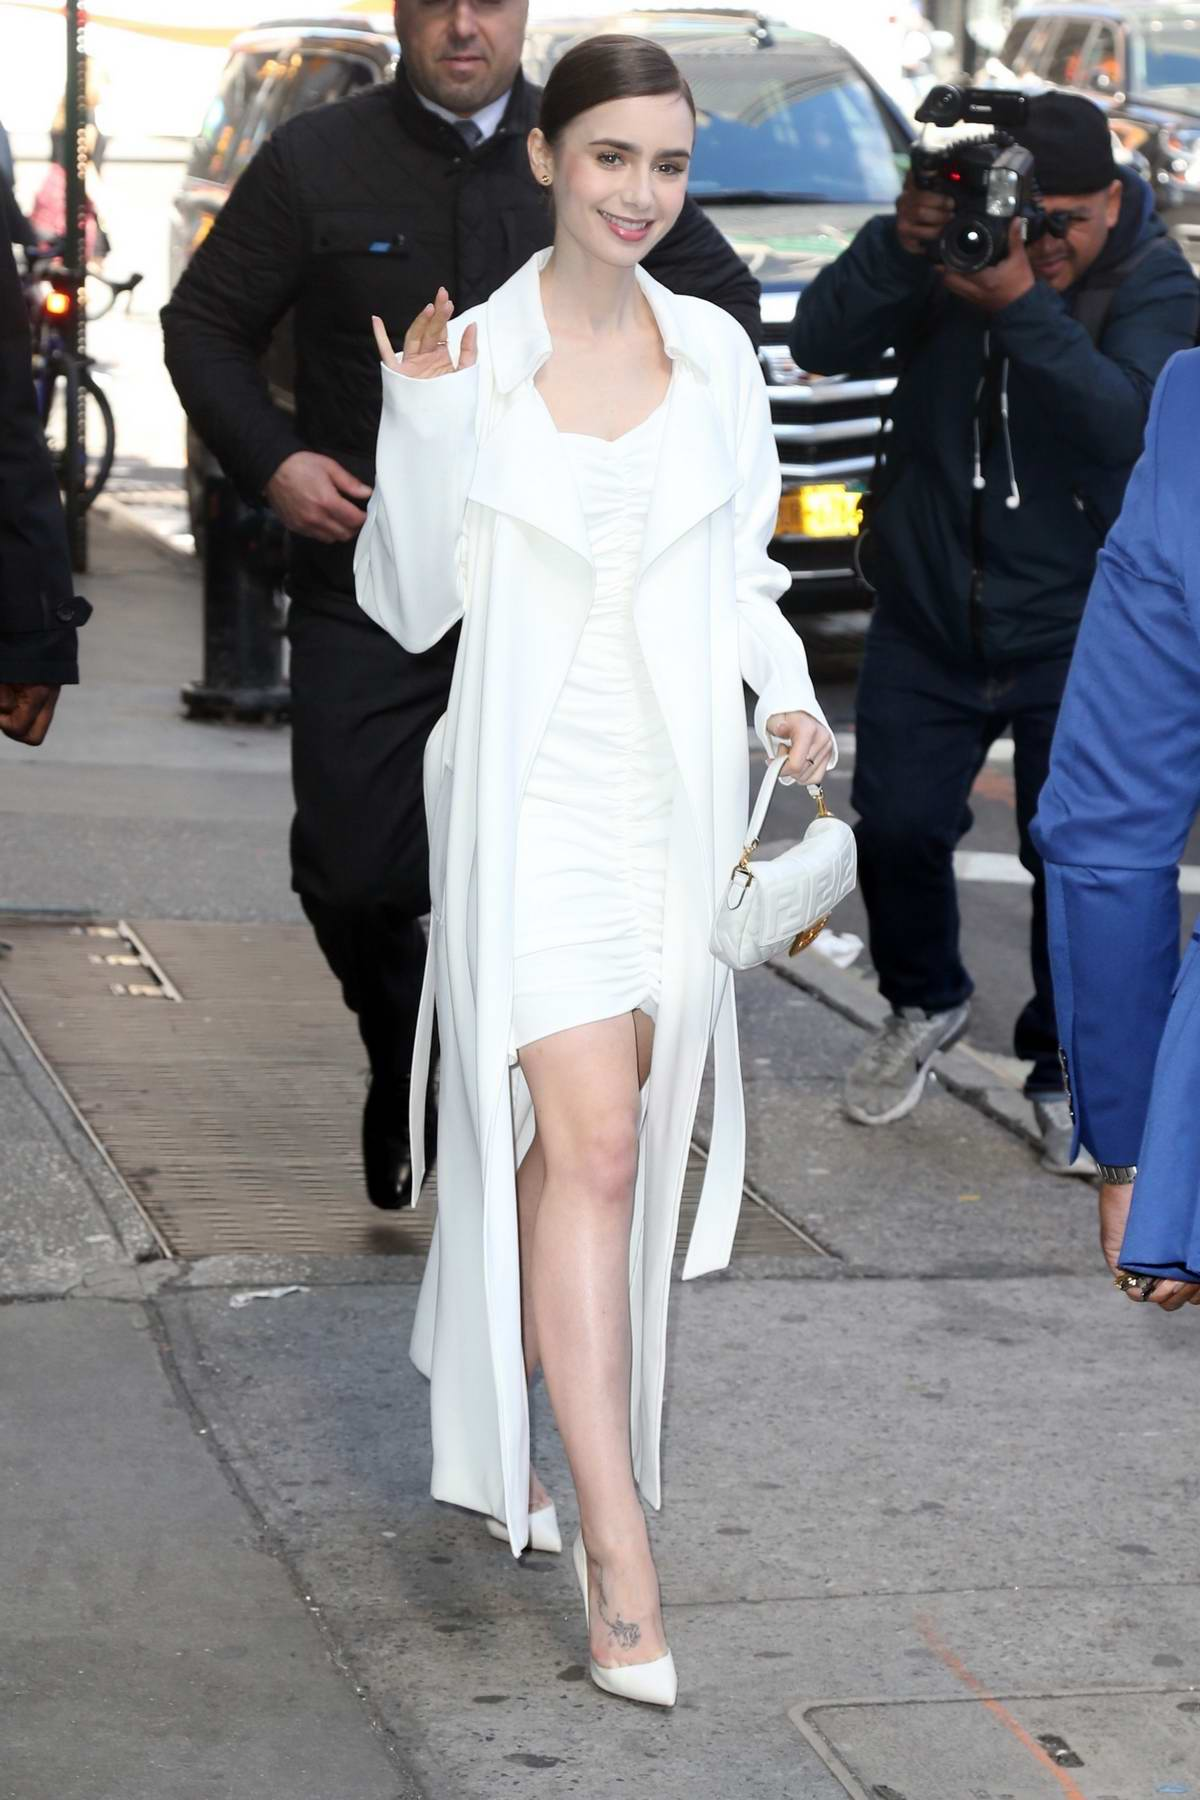 Lily Collins dons an all white ensemble while visiting Good Morning America in New York City